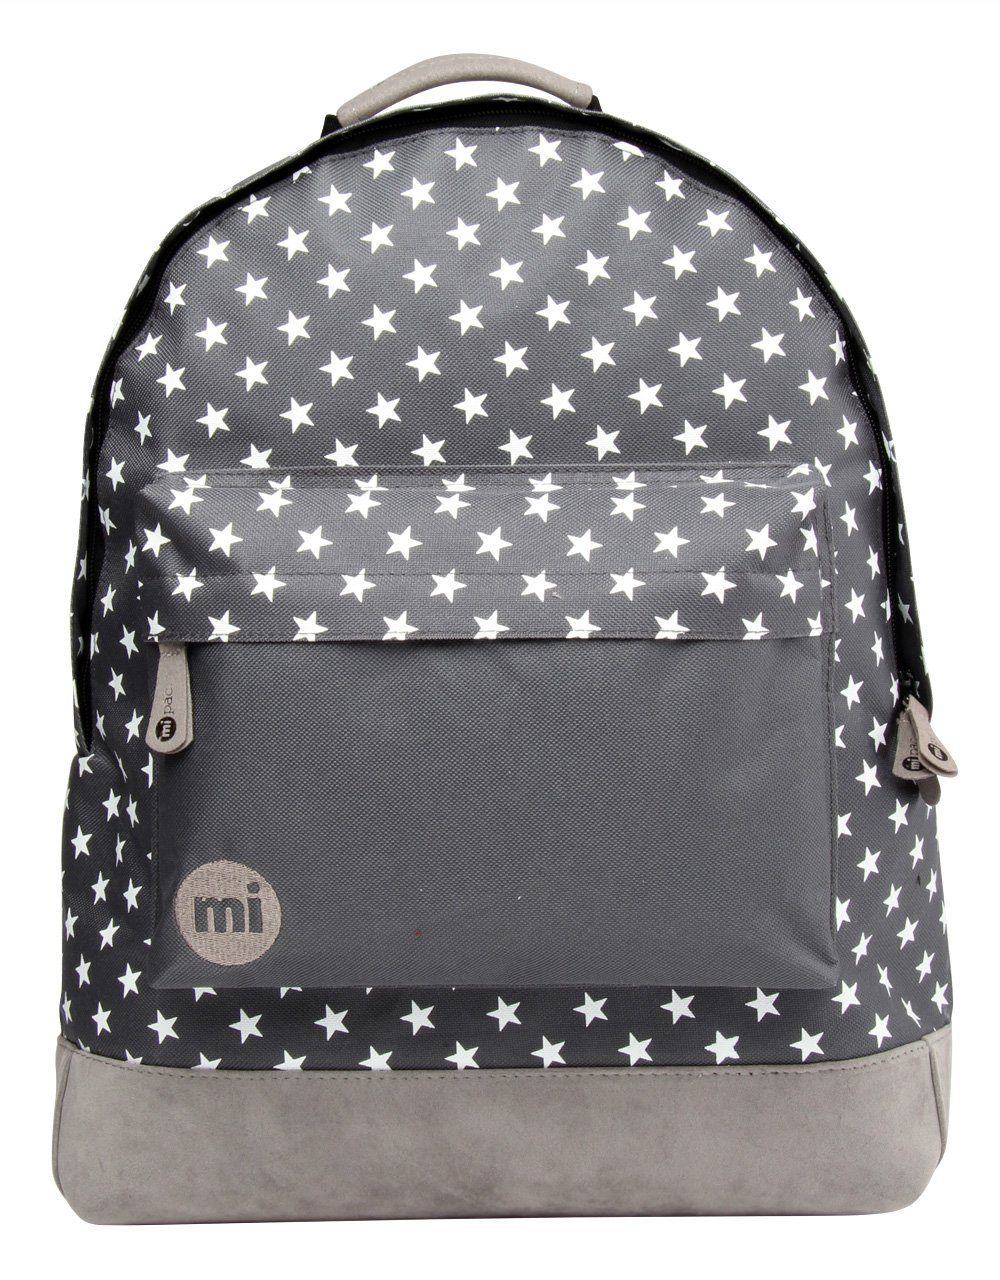 mi pac. Rucksack mit Laptopfach, »Backpack, All Stars Solid Pocket«